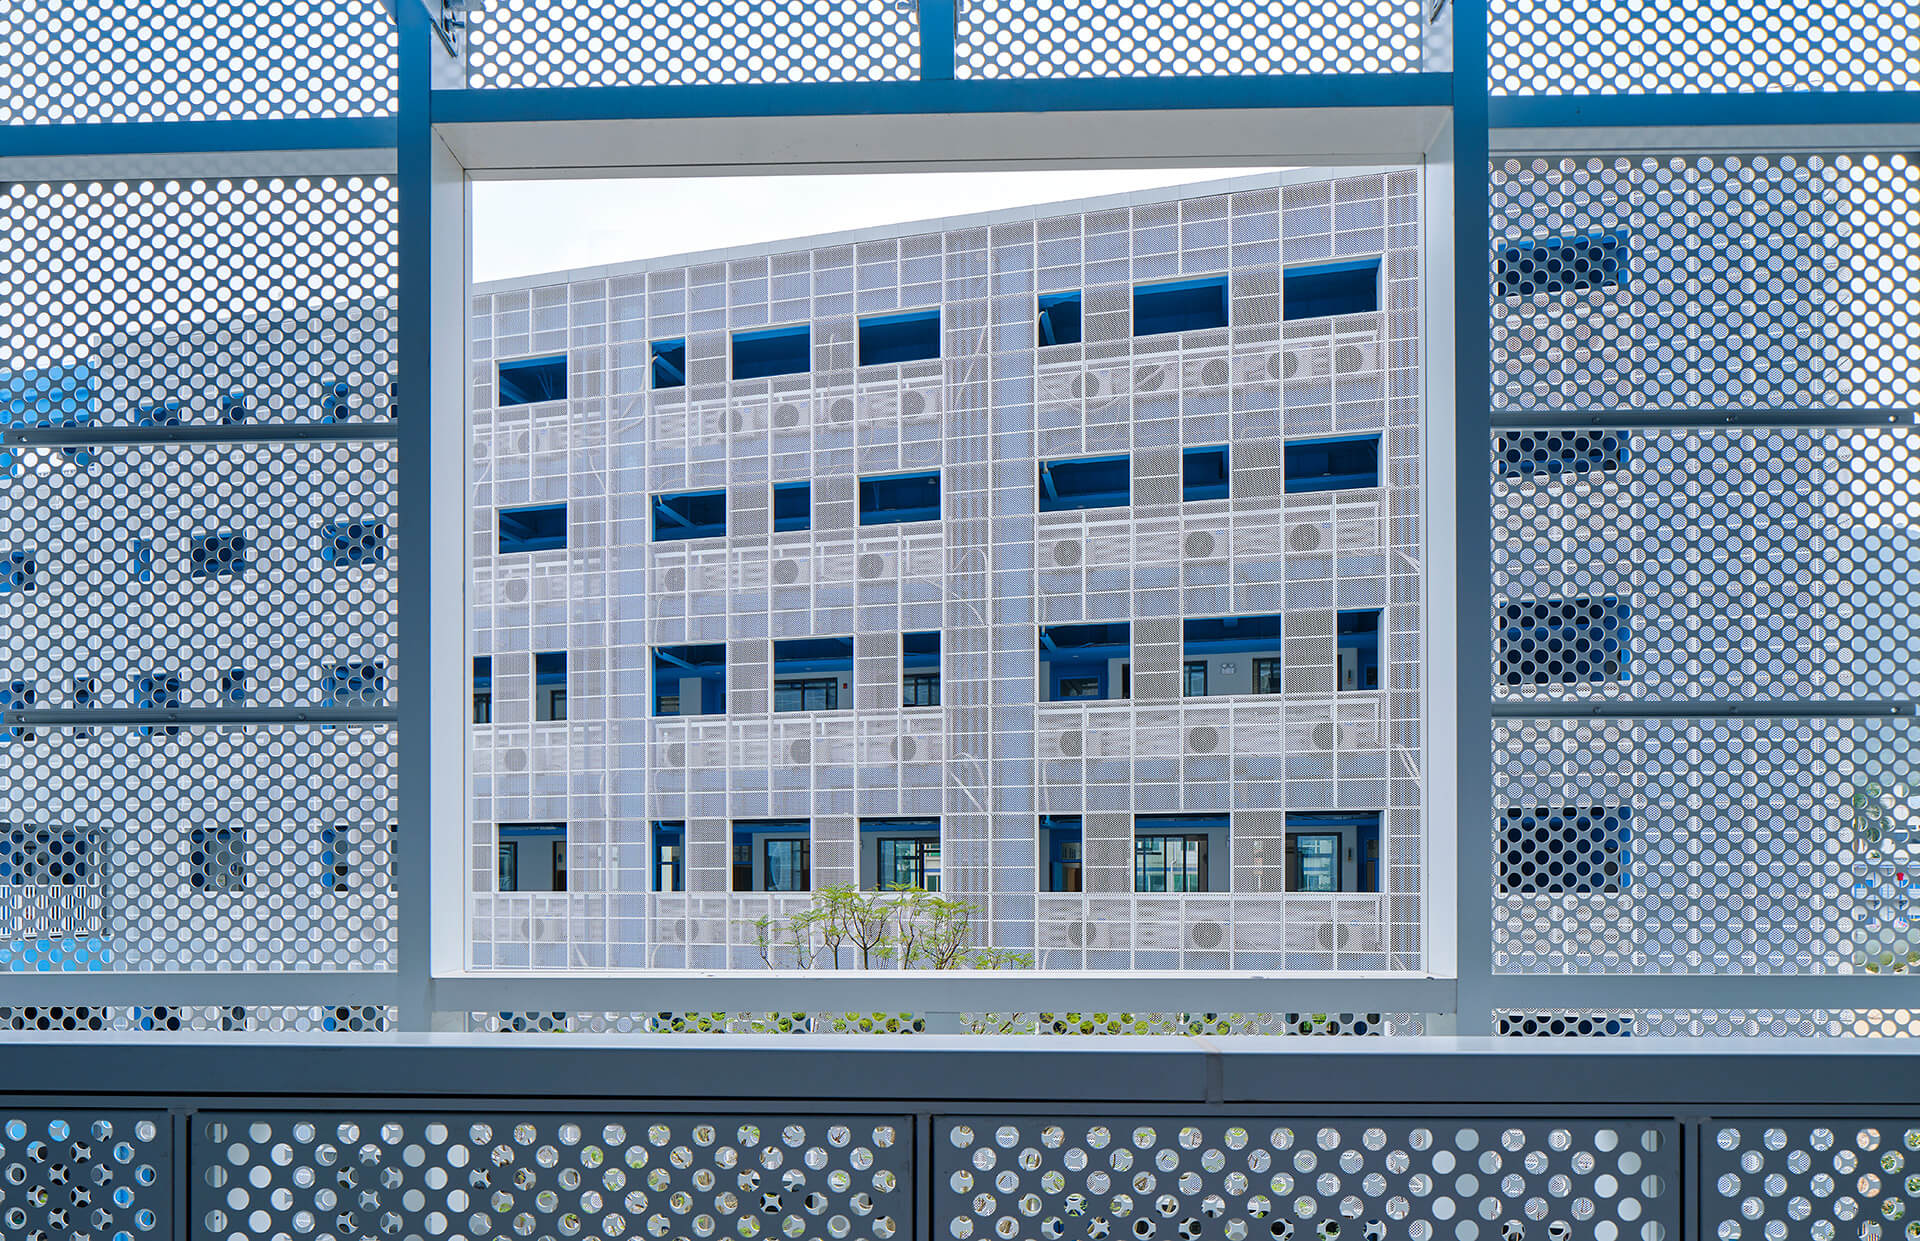 Perforated metal panels compose the facade | Crossboundaries | Shenzhen, China | STIRworld